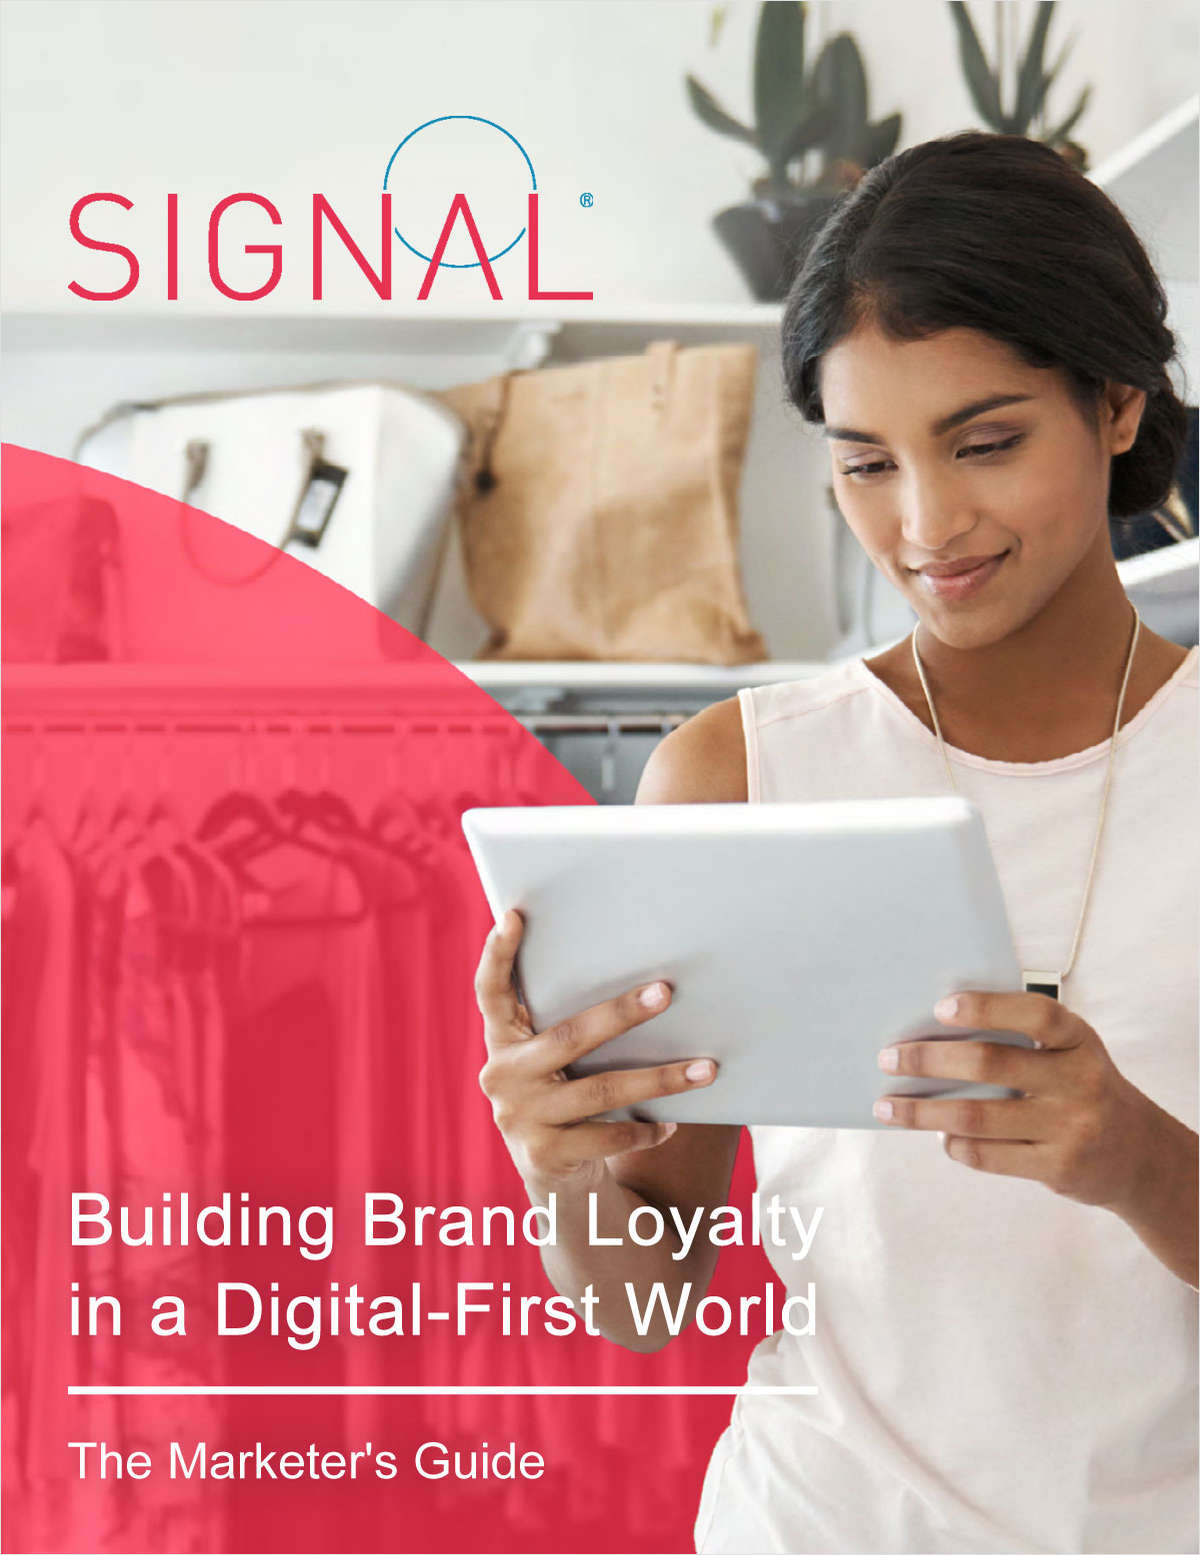 Building Brand Loyalty in a Digital-First World